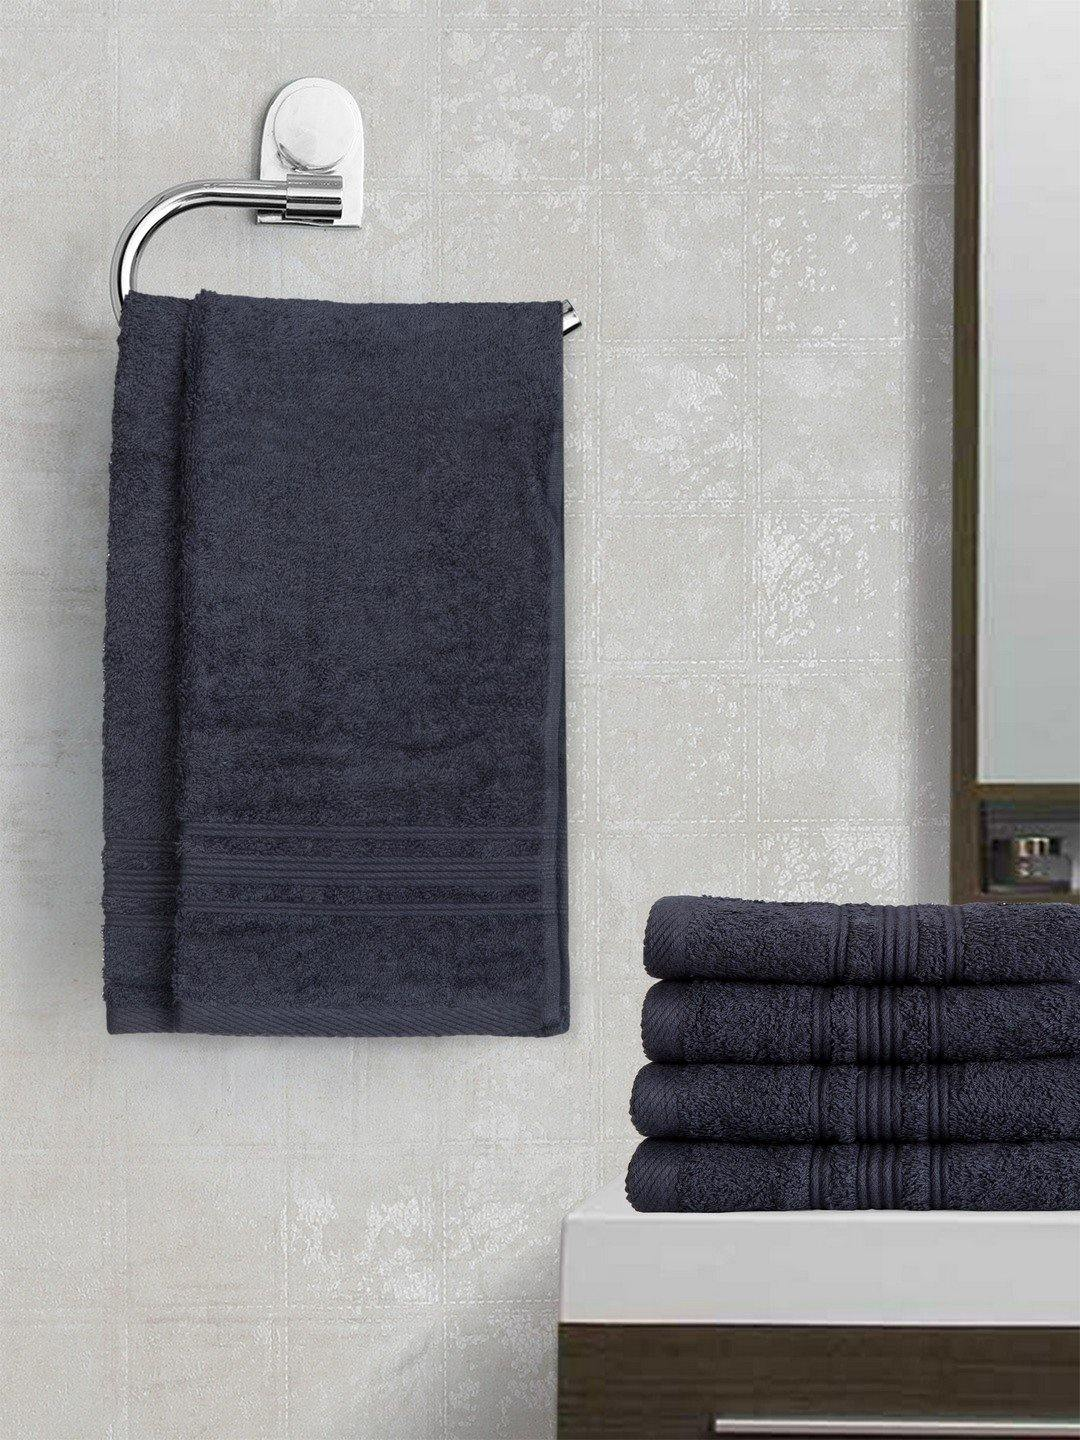 "Lushomes Navy Super Soft and Fluffy Cotton Hand Towel Set (Size 40 x 60 cms"", Pack of 6 Pcs, 450 GSM) - Lushomes"